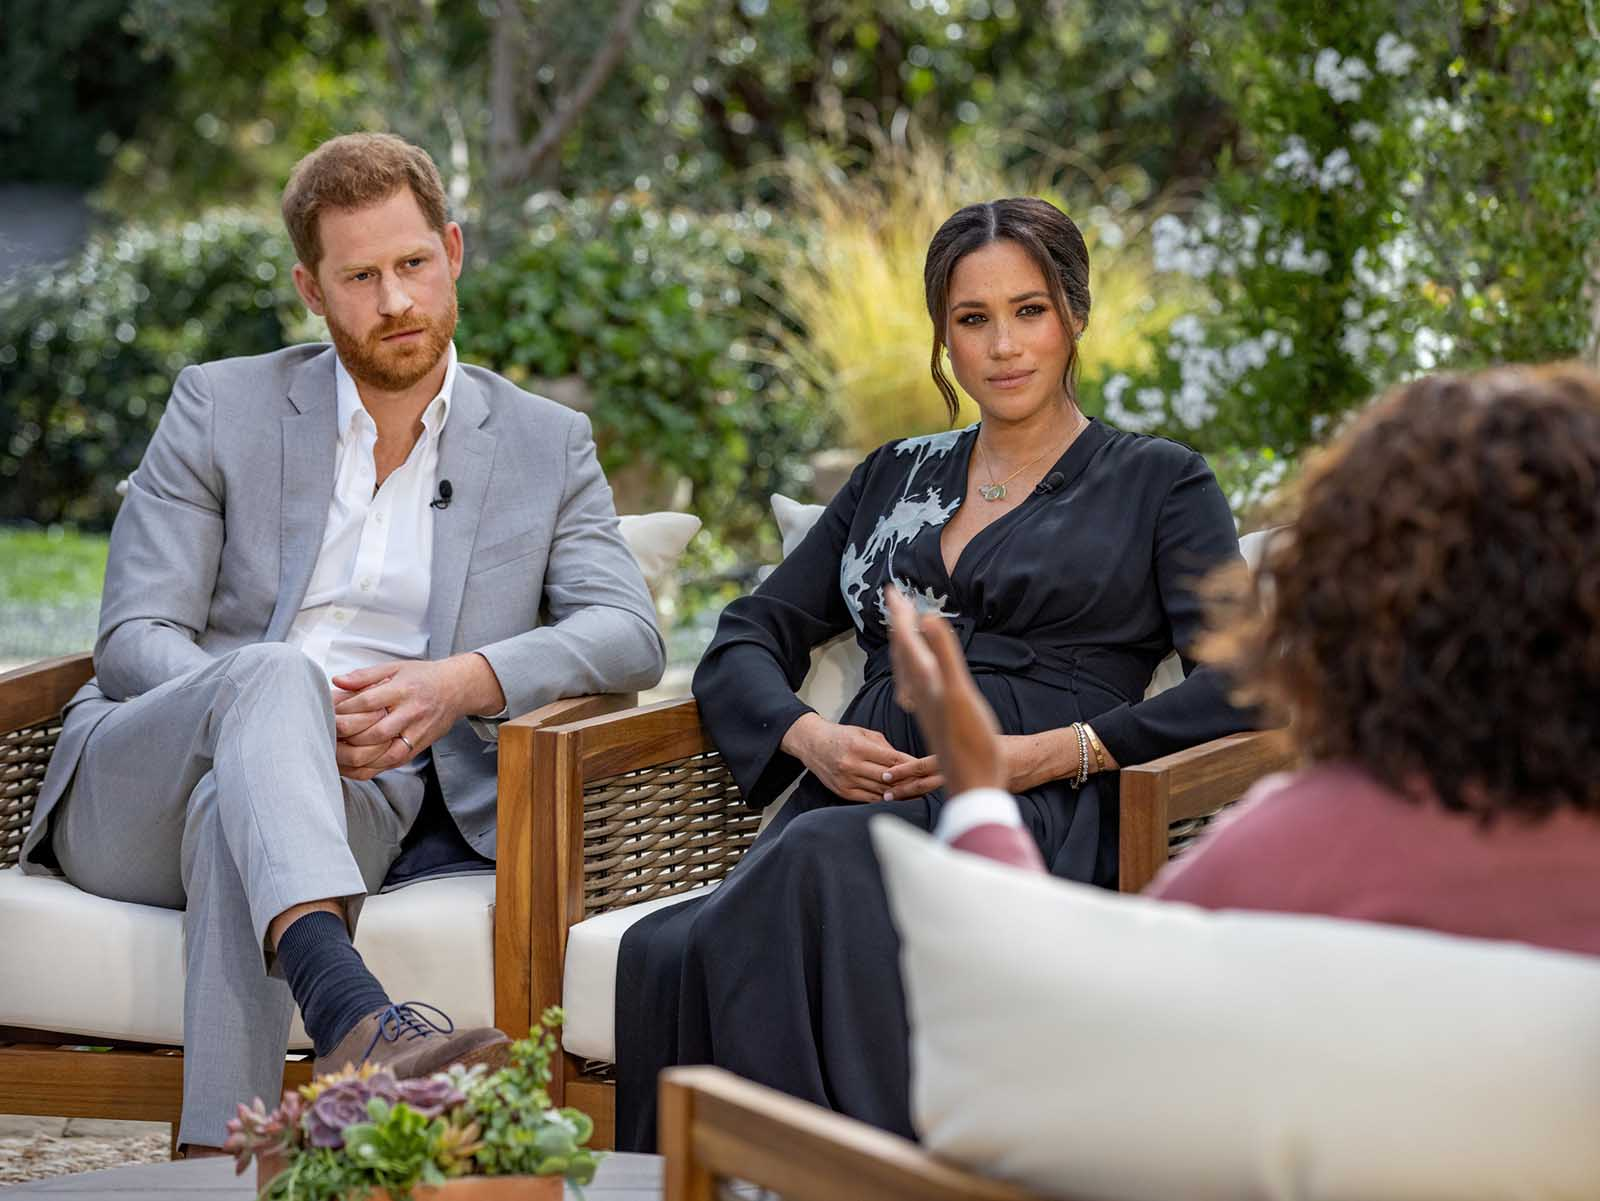 'Harry and Meghan: The Revelations' is the quintessential doc for any fan of the British Royal Family. Here's why you need to watch when it releases.